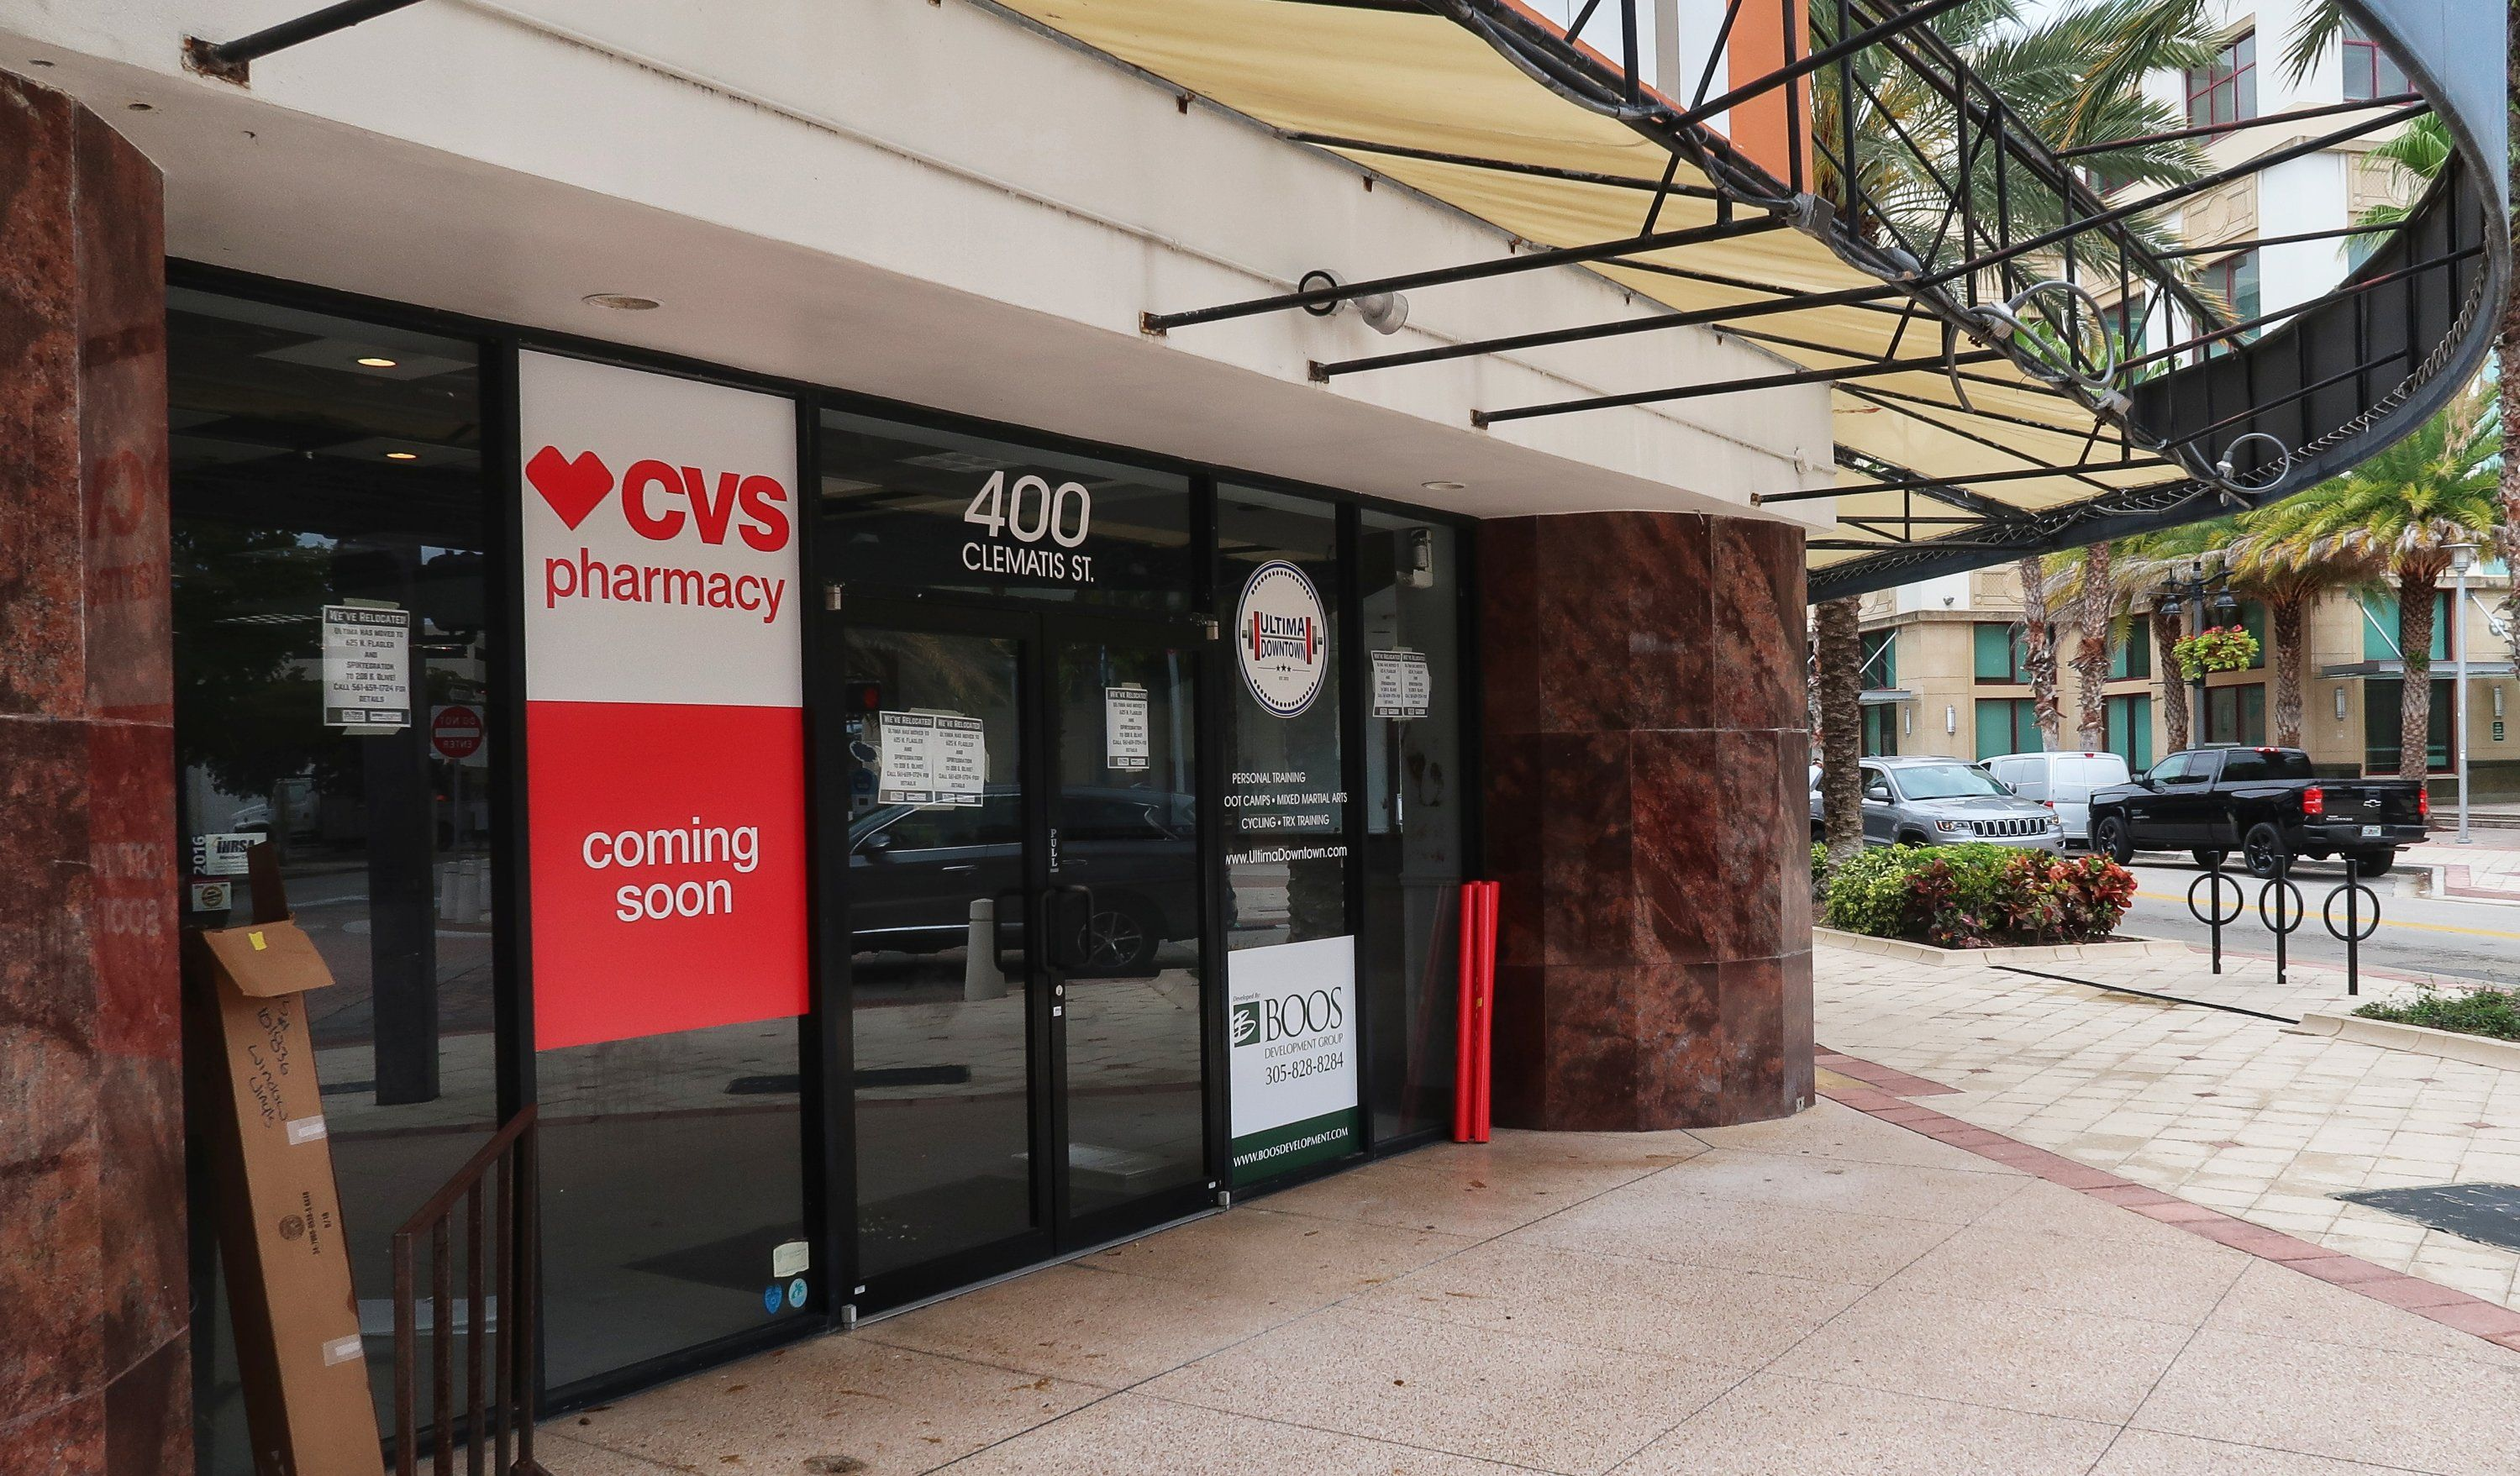 cvs coming soon to 400 clematis st   ilovewpb